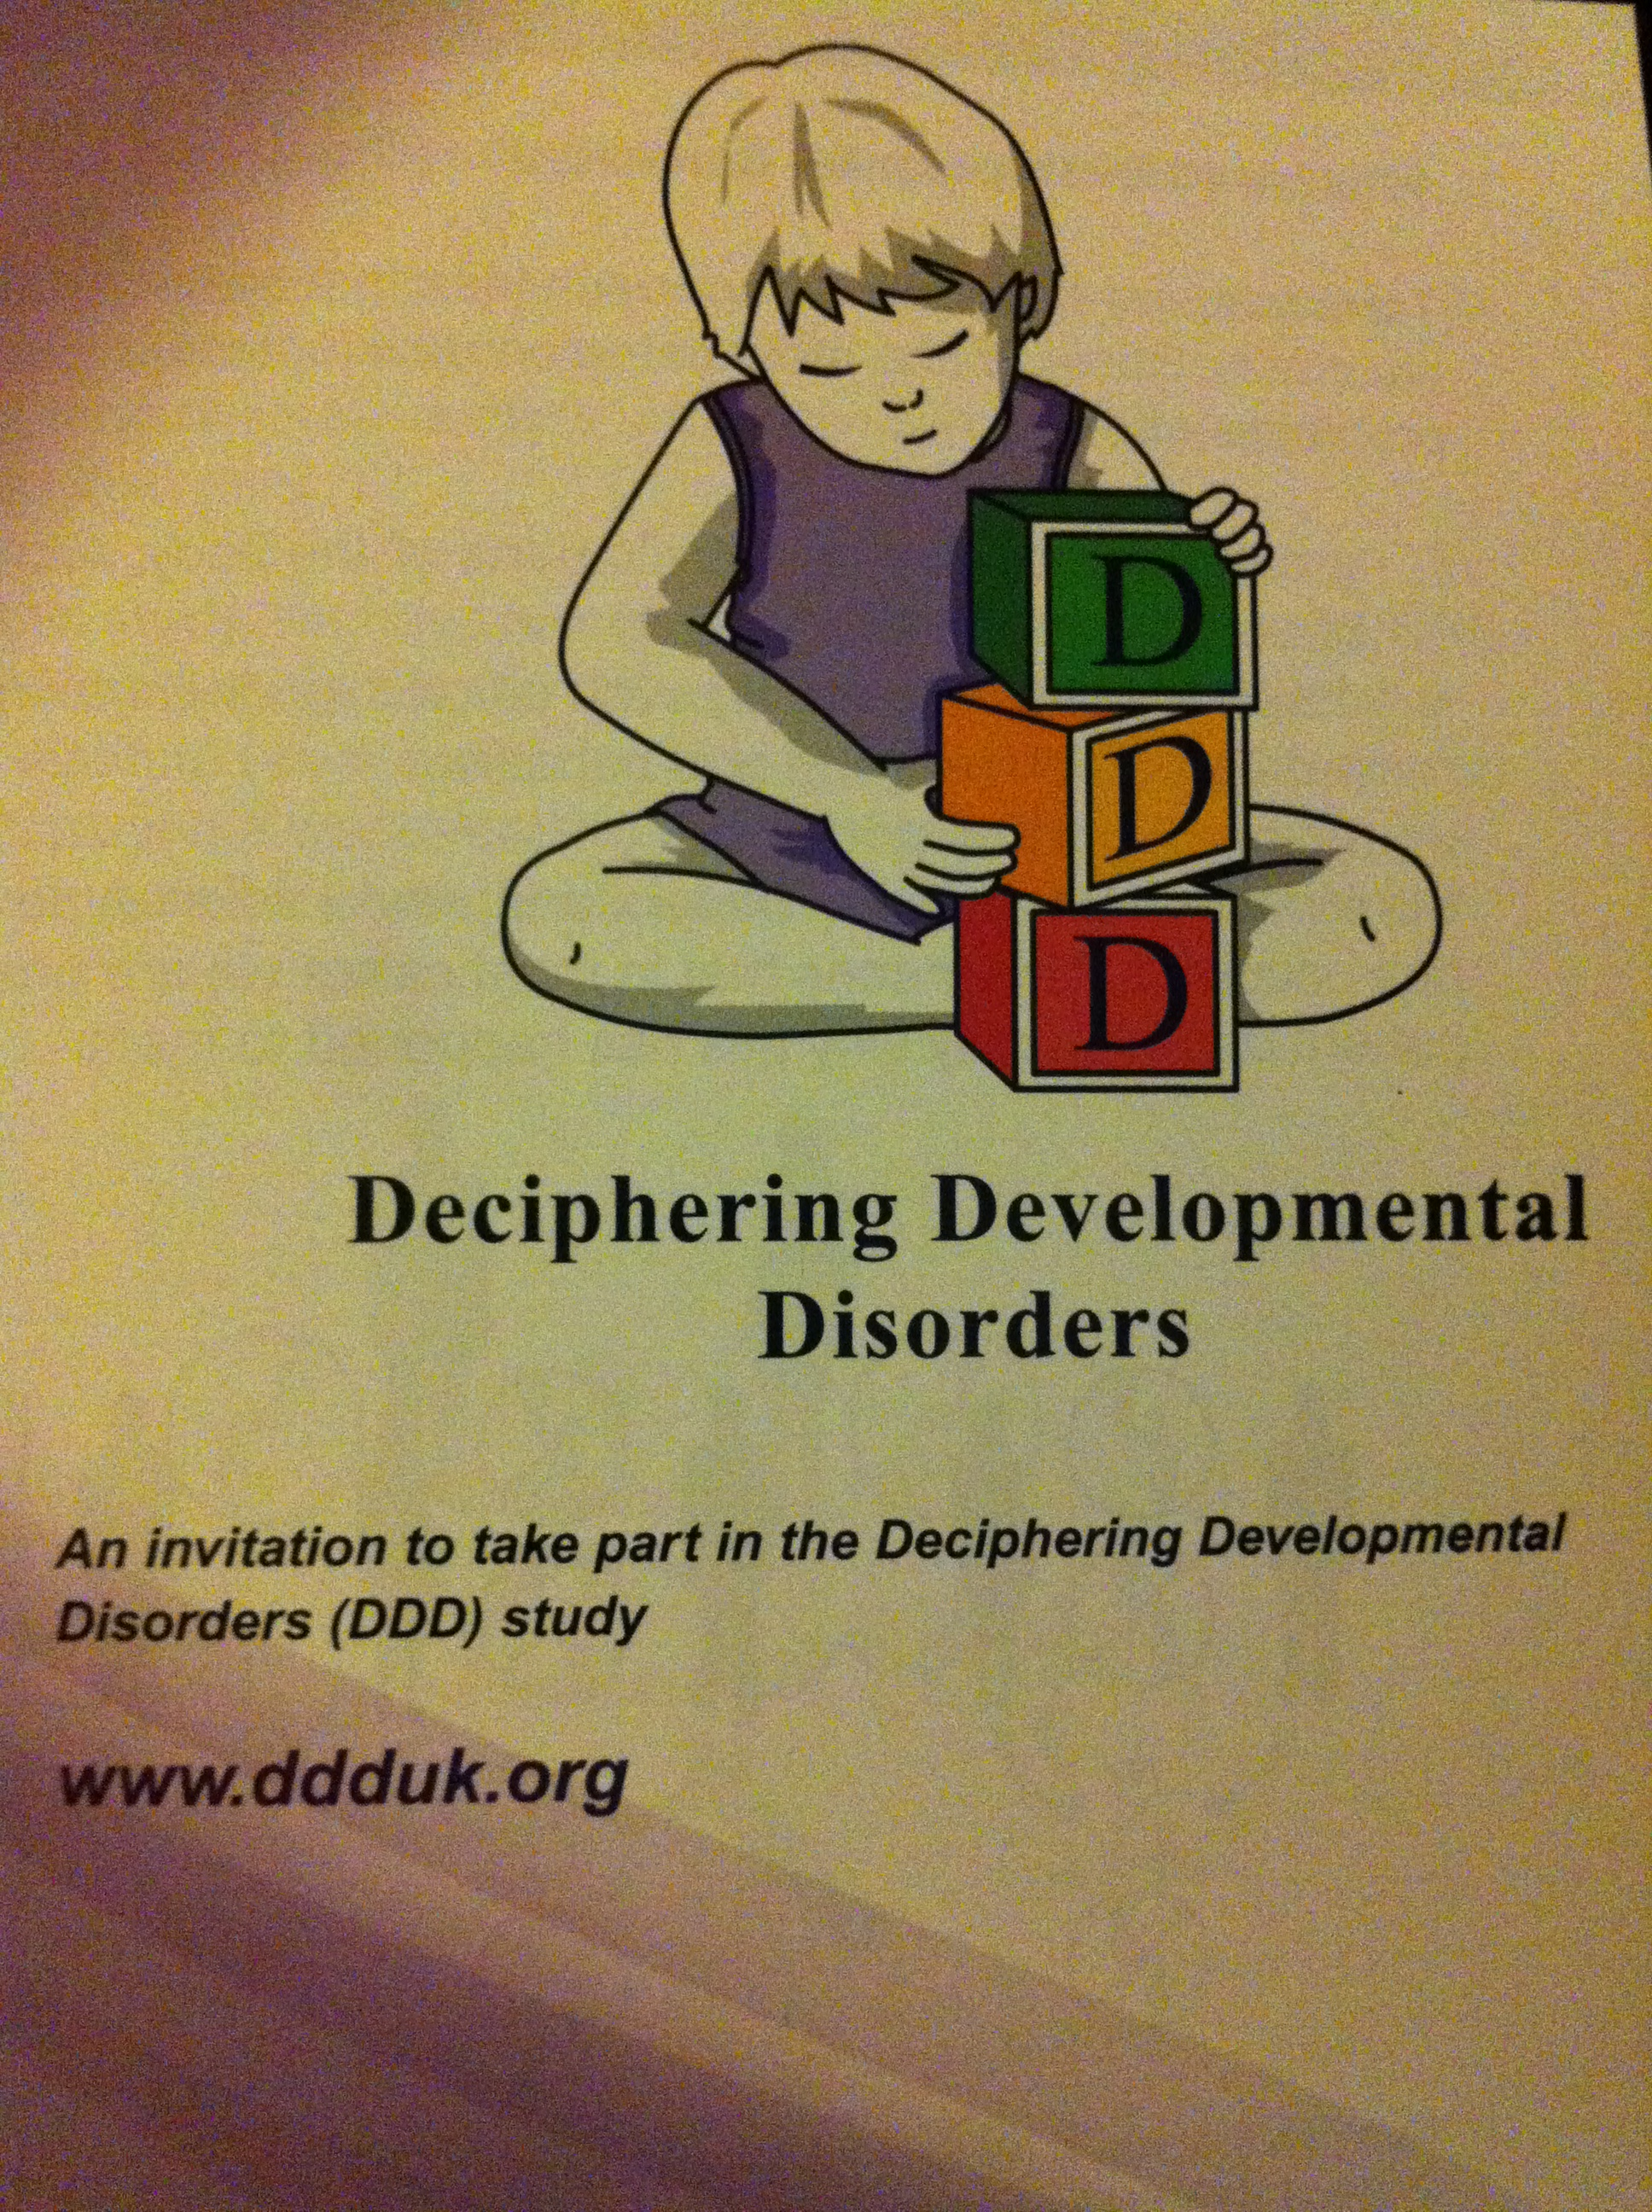 Deciphering Developmental Disorders study